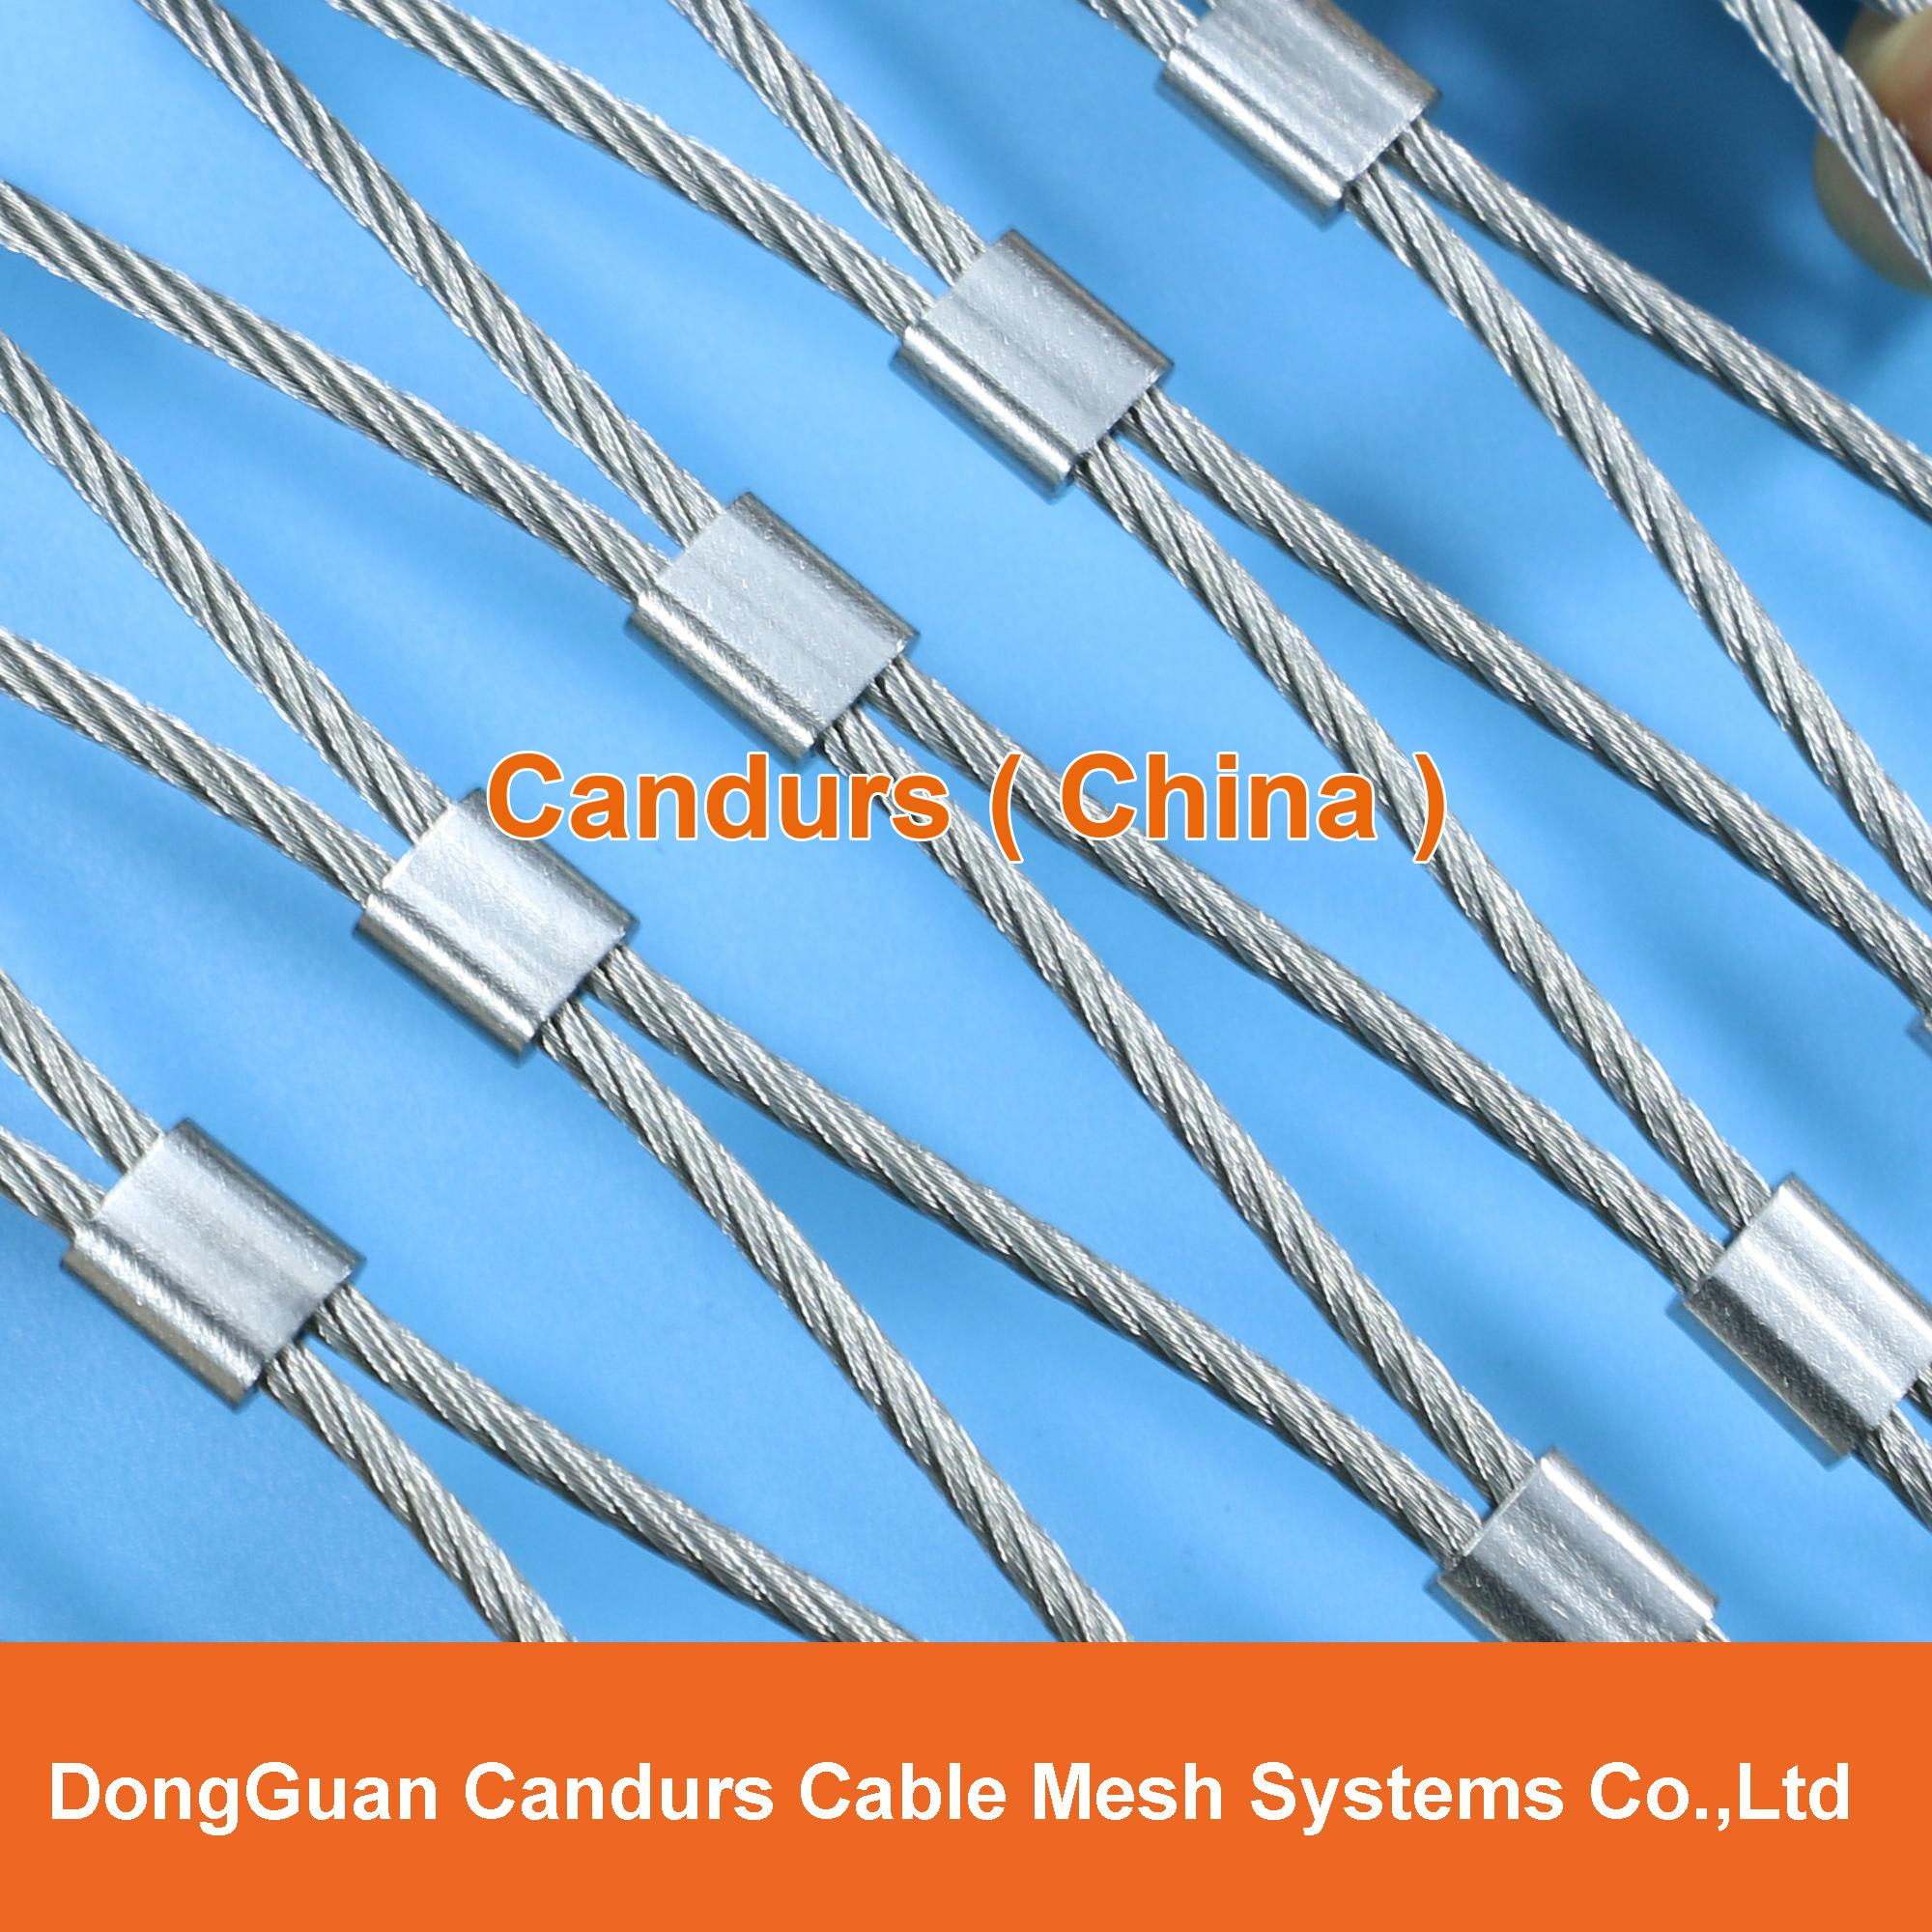 Diamond Ferruled Stainless Steel Wire Rope Cable Balustrade Railing Infill Mesh 17